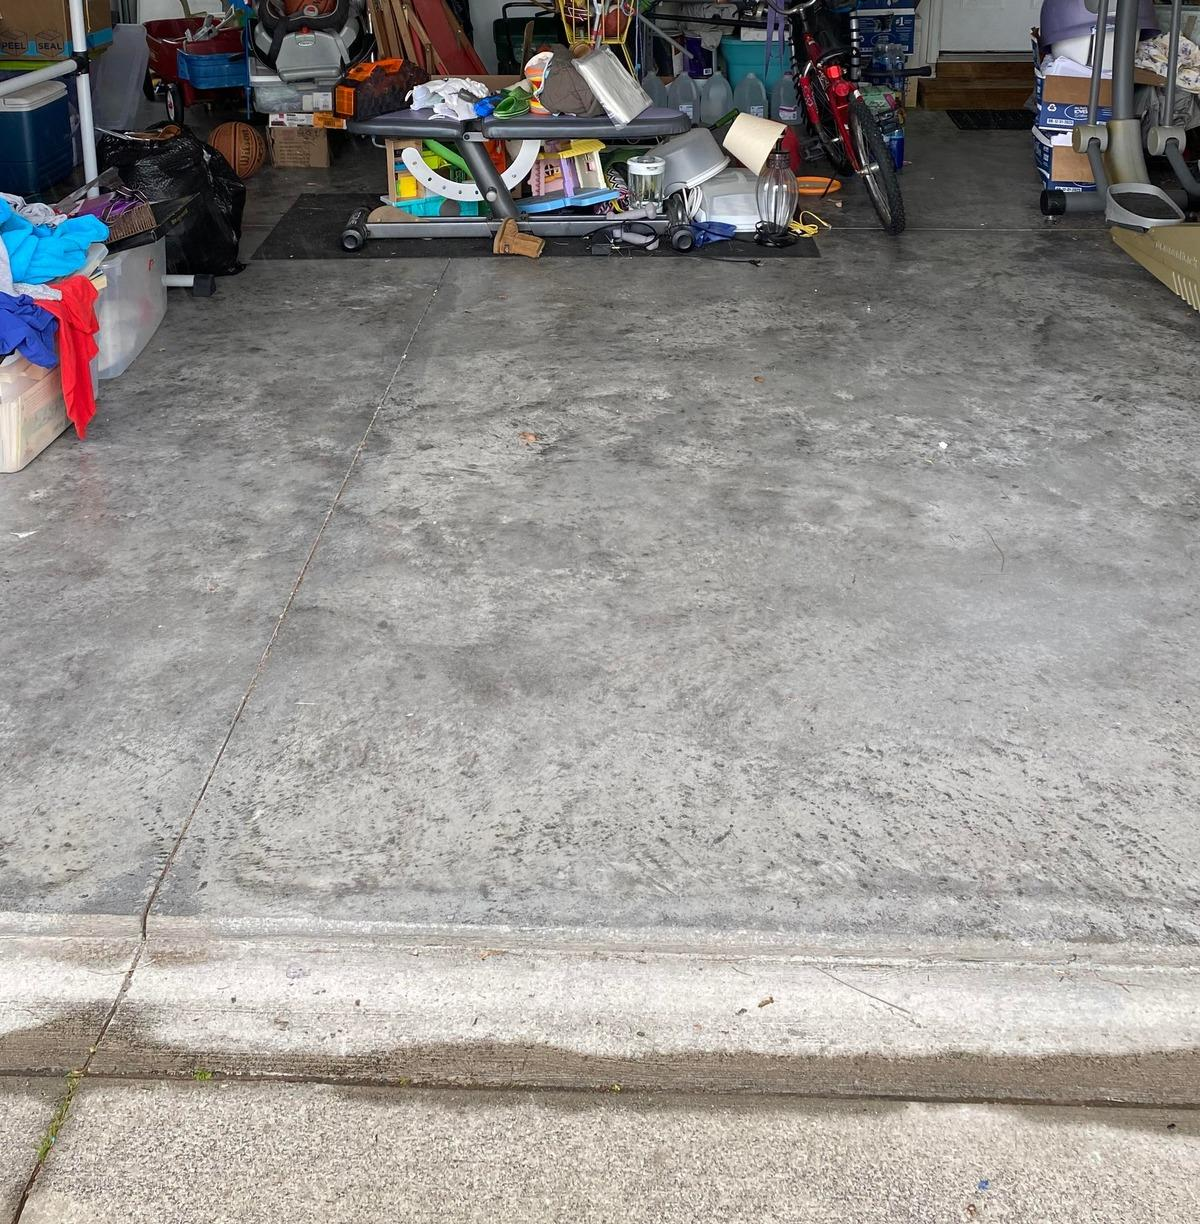 Partial Garage Cleanout in Wilmington, NC - After Photo